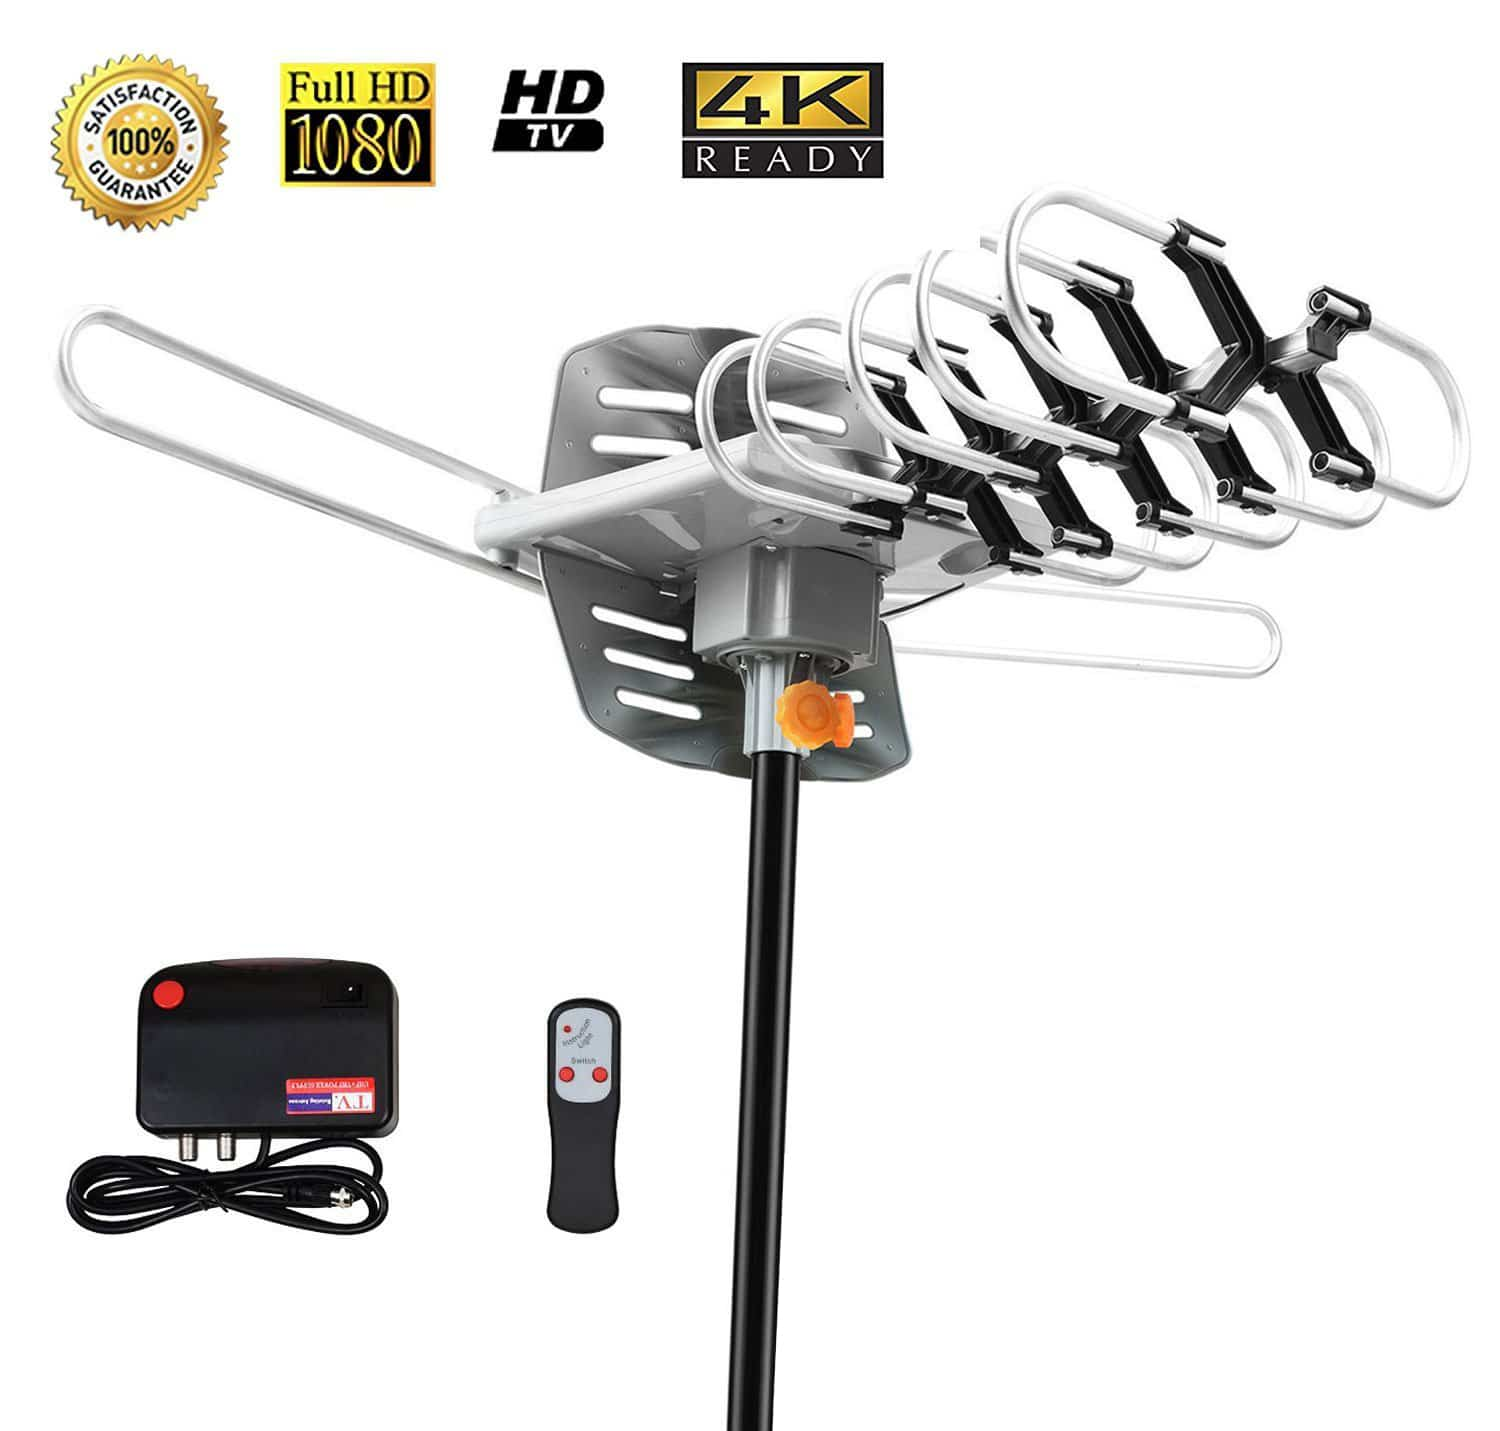 hight resolution of sobetter amplified outdoor digital tv antenna 4k ready